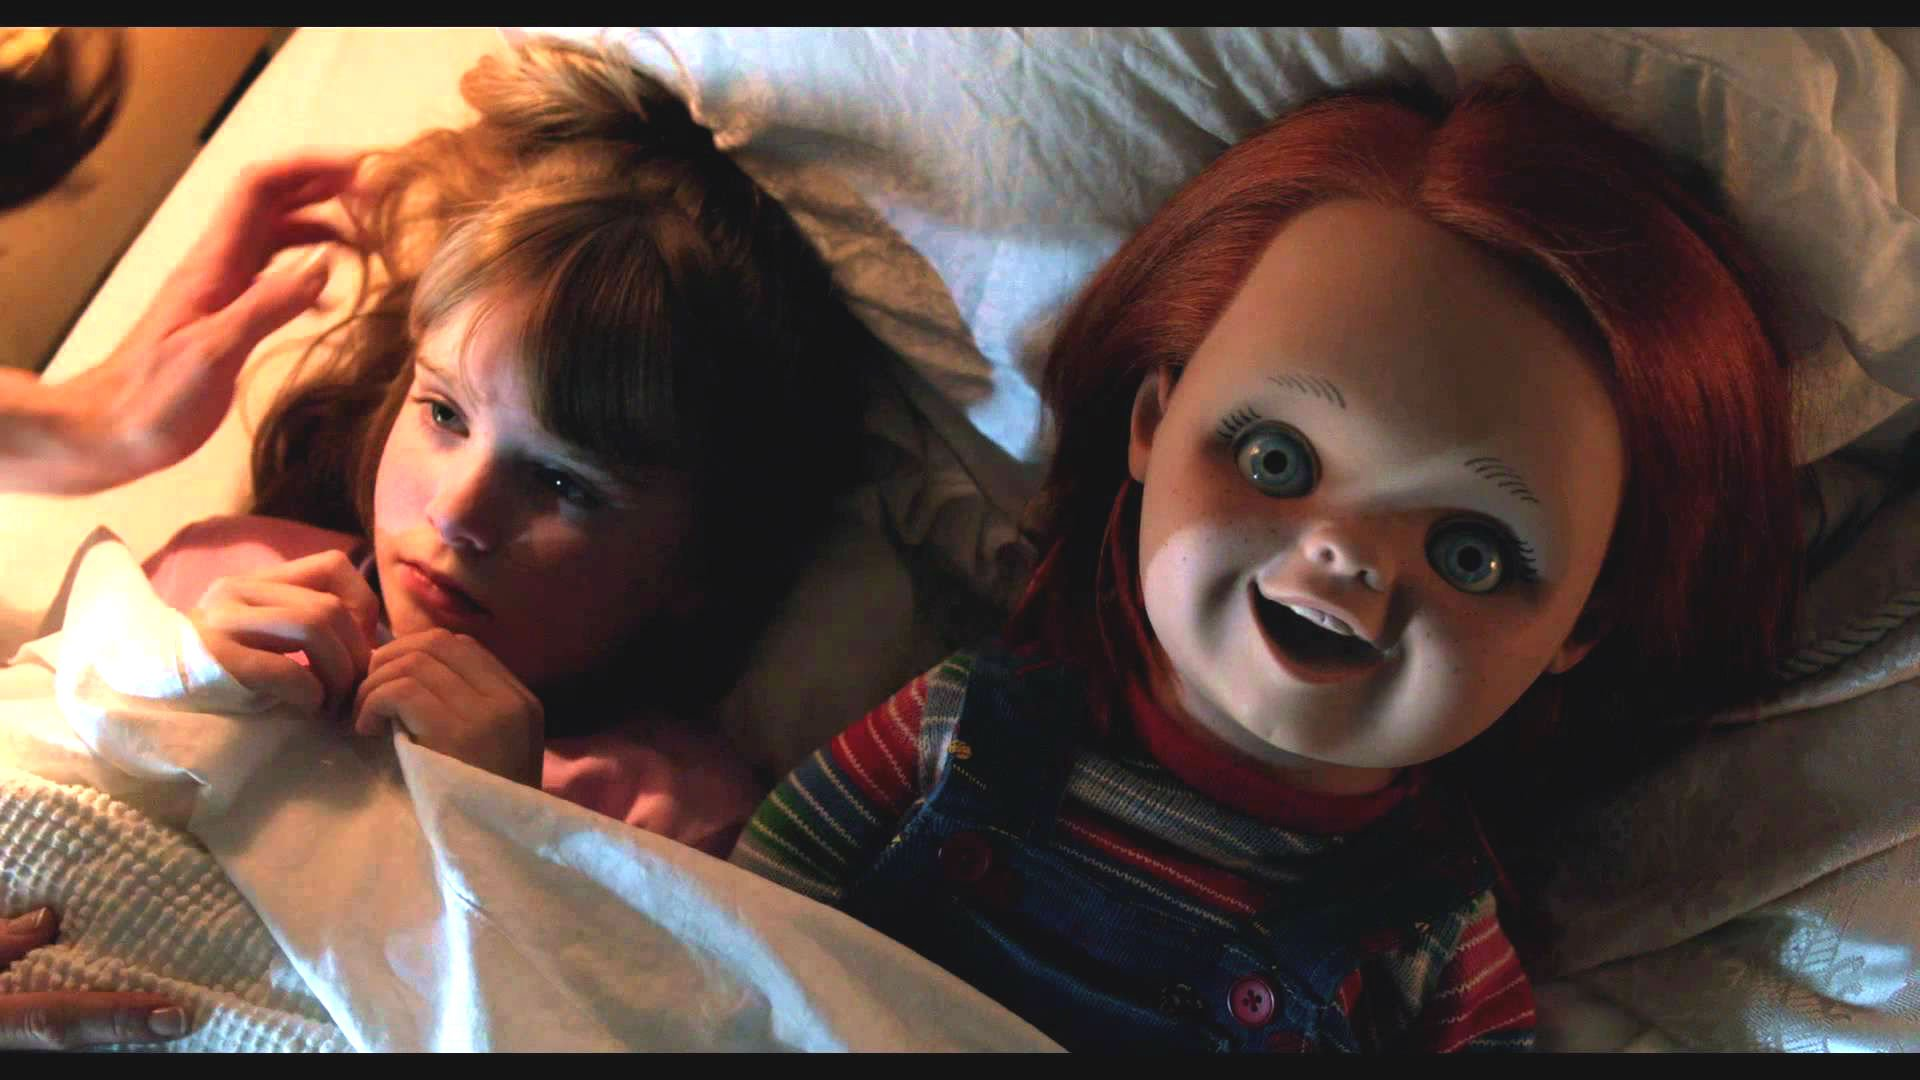 CHILDS-PLAY-chucky-dark-horror-creepy-scary-1920x1080-UP-wallpaper-wpc9003491